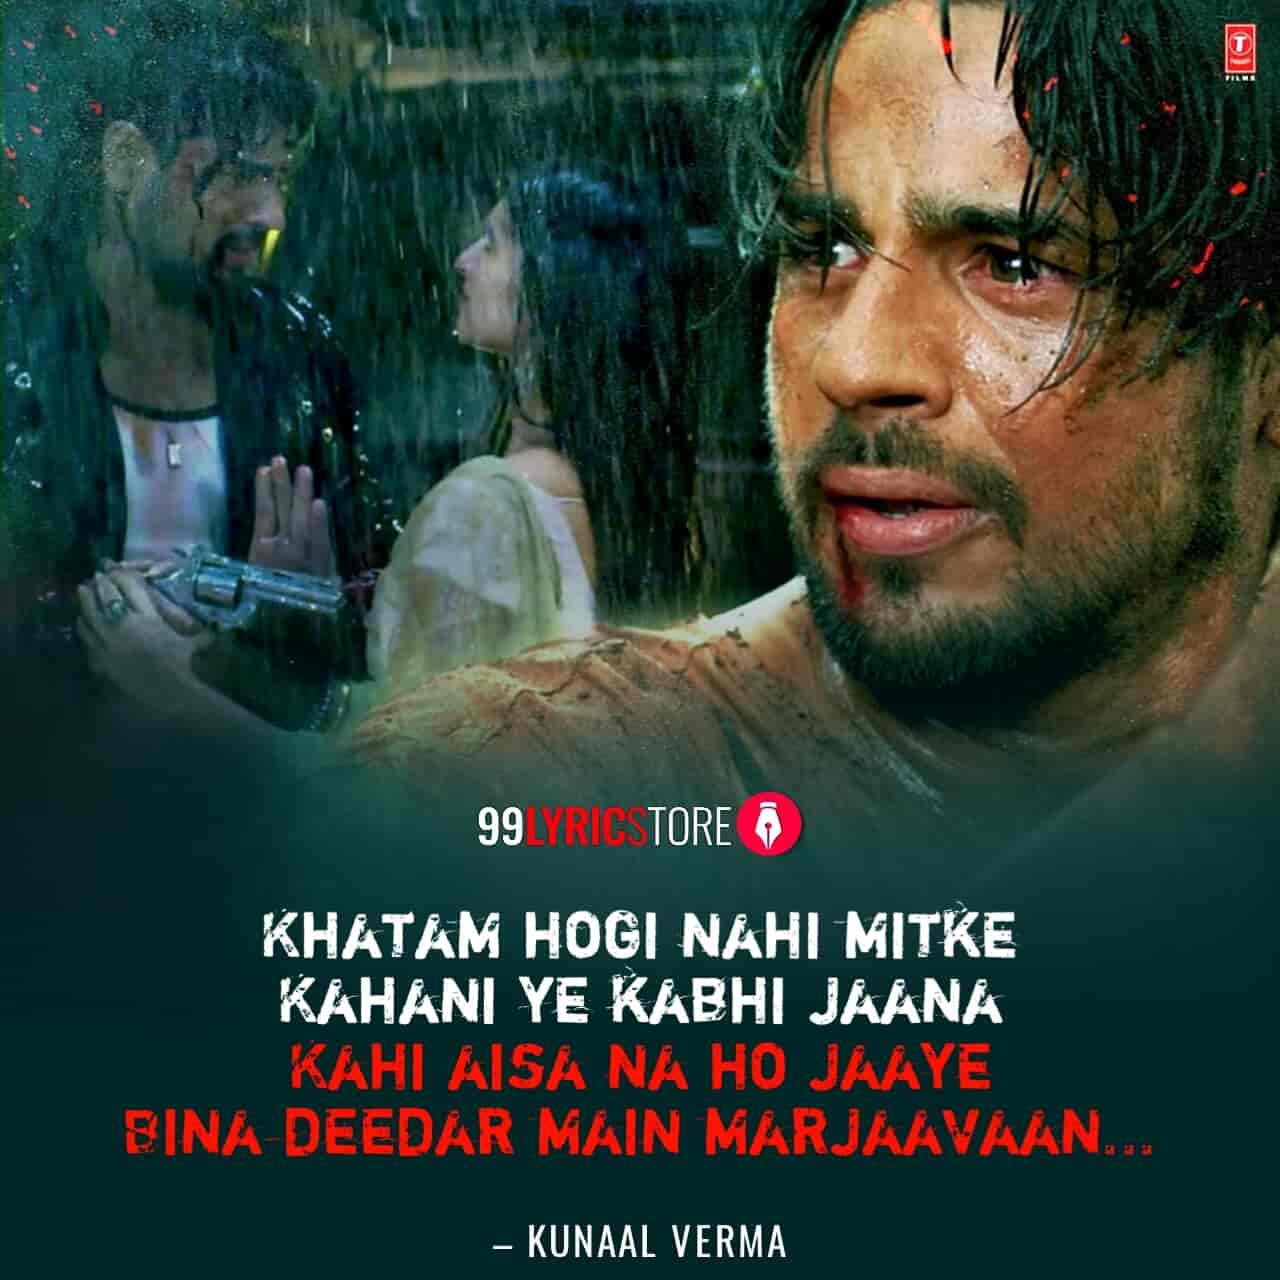 Tum Hi Aana Sad Version Song Images From Movie marjaavaan